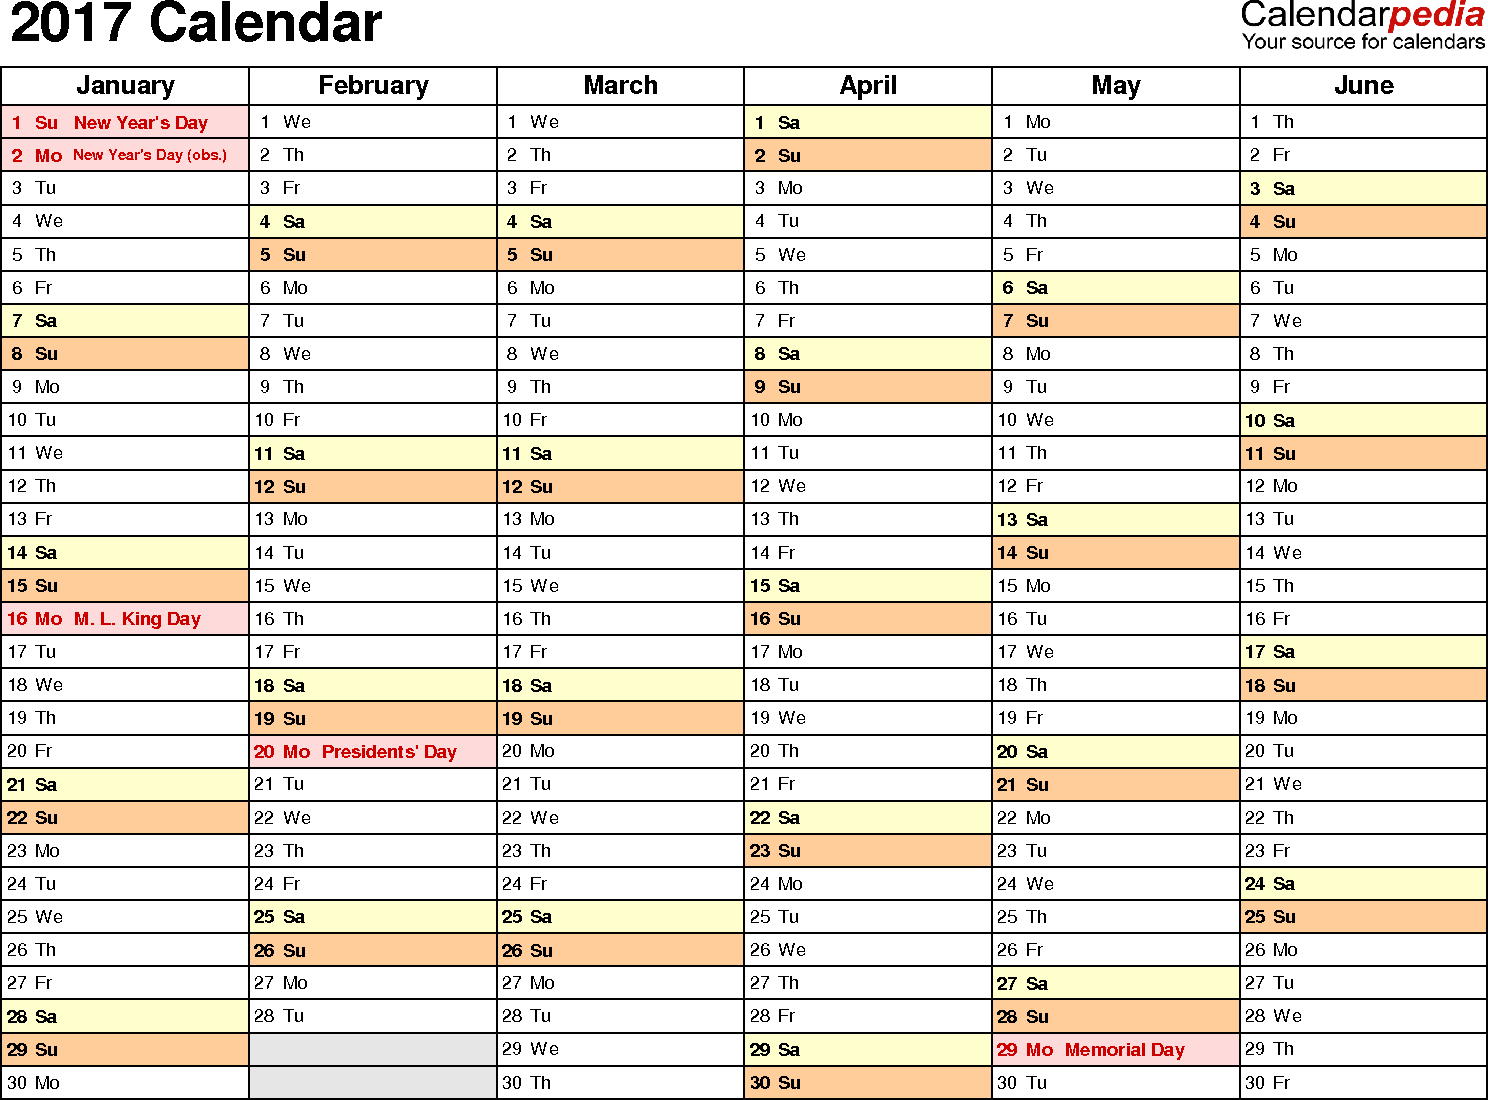 Ediblewildsus  Unique  Calendar  Download  Free Printable Excel Templates Xls With Luxury Template   Calendar For Excel Months Horizontally  Pages Landscape Orientation With Agreeable Raci Template Excel Also Excel Calculate Percentage Of Total In Addition Excel Day From Date And Seating Chart Template Excel As Well As Excel  Chart Additionally Control Enter Excel From Calendarpediacom With Ediblewildsus  Luxury  Calendar  Download  Free Printable Excel Templates Xls With Agreeable Template   Calendar For Excel Months Horizontally  Pages Landscape Orientation And Unique Raci Template Excel Also Excel Calculate Percentage Of Total In Addition Excel Day From Date From Calendarpediacom